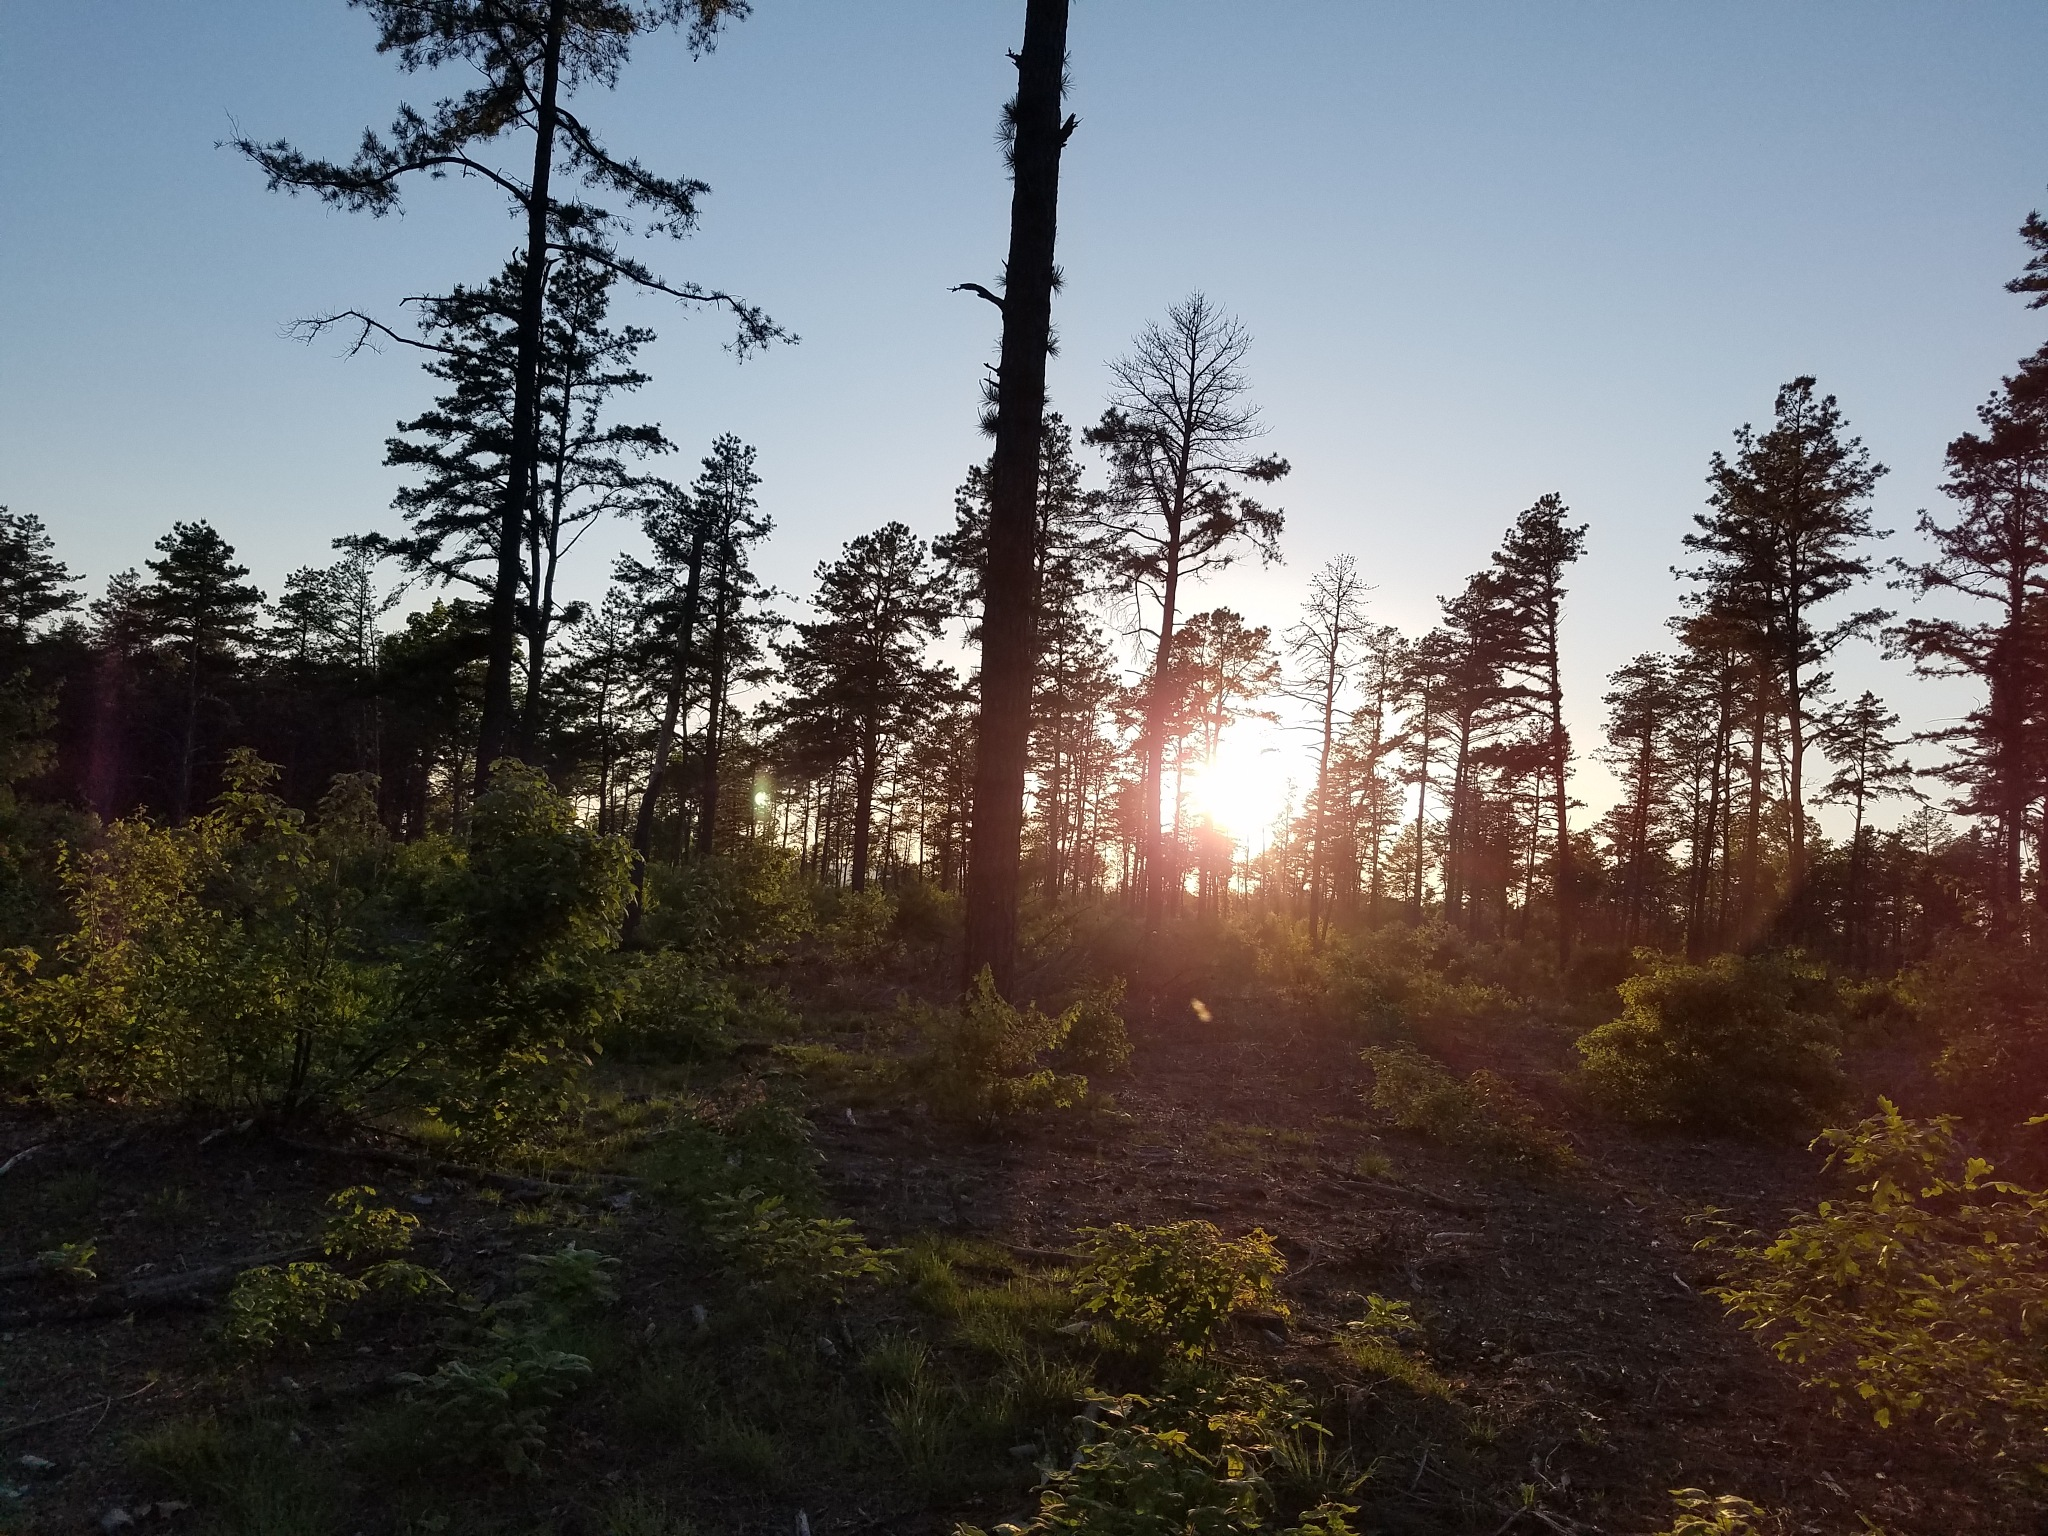 Sunset in the partially cleared forest  by David Korpiewski